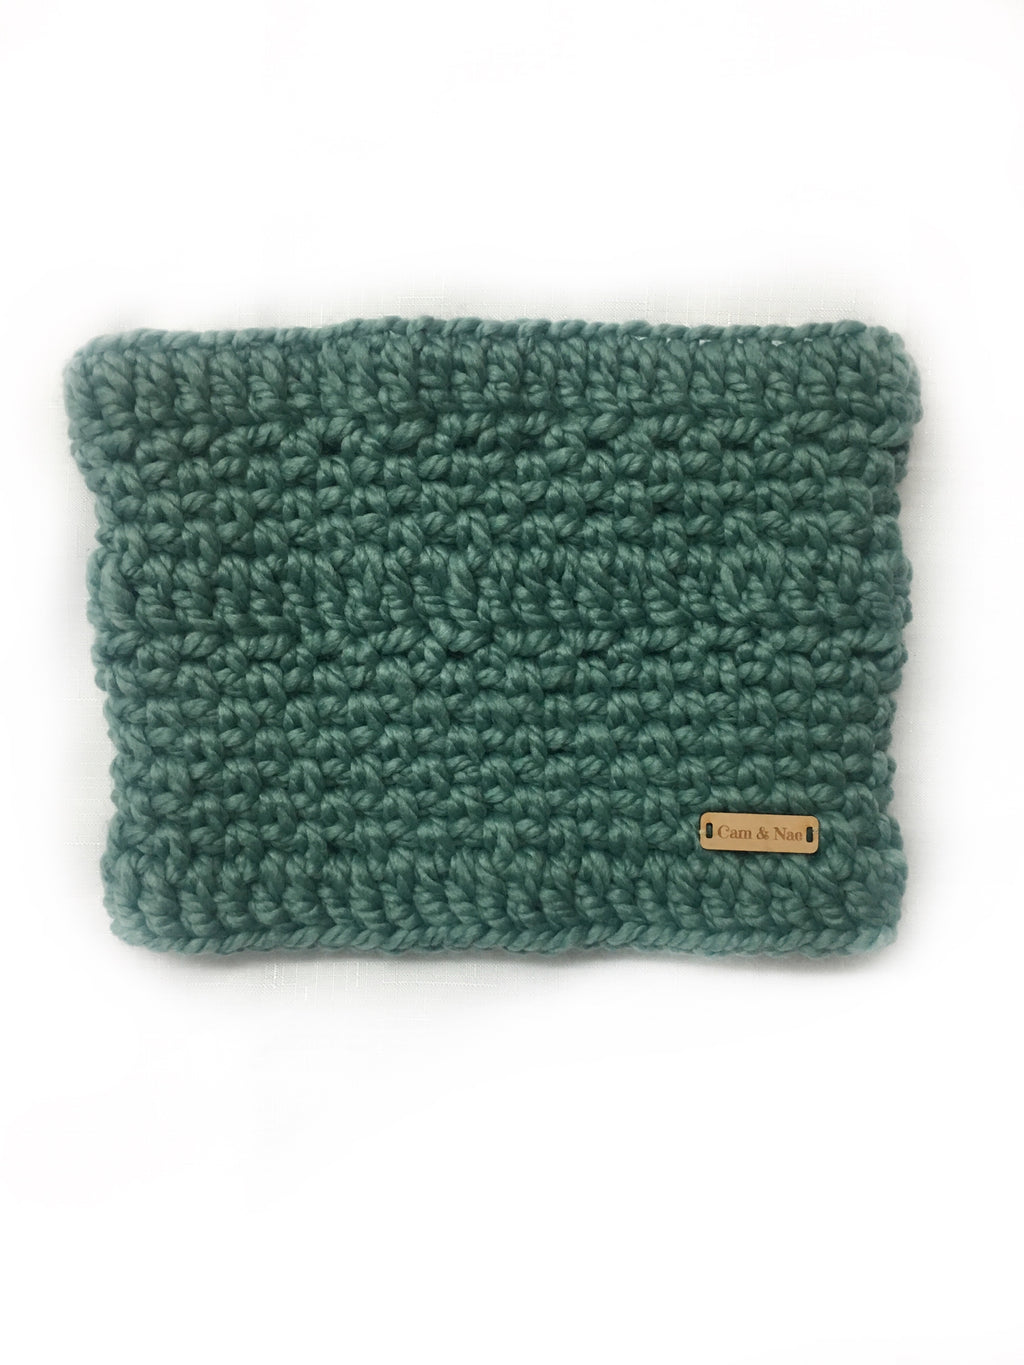 Chunky knit Cowl- Succulent